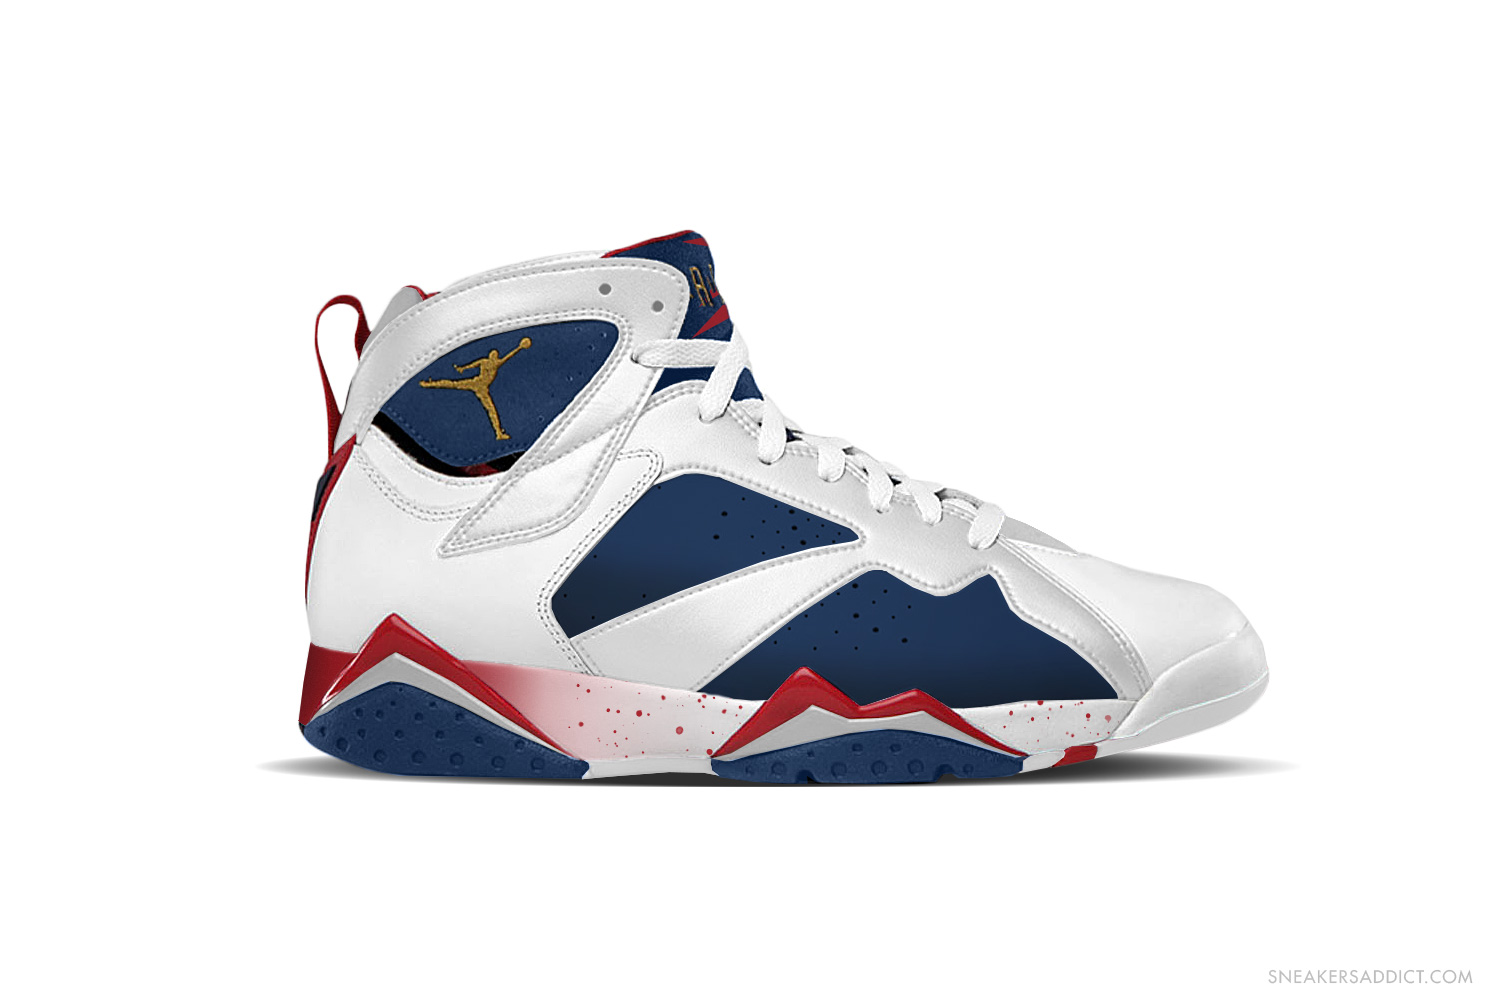 Air Jordan 7 Olympic Tinker Alternate 304775-123